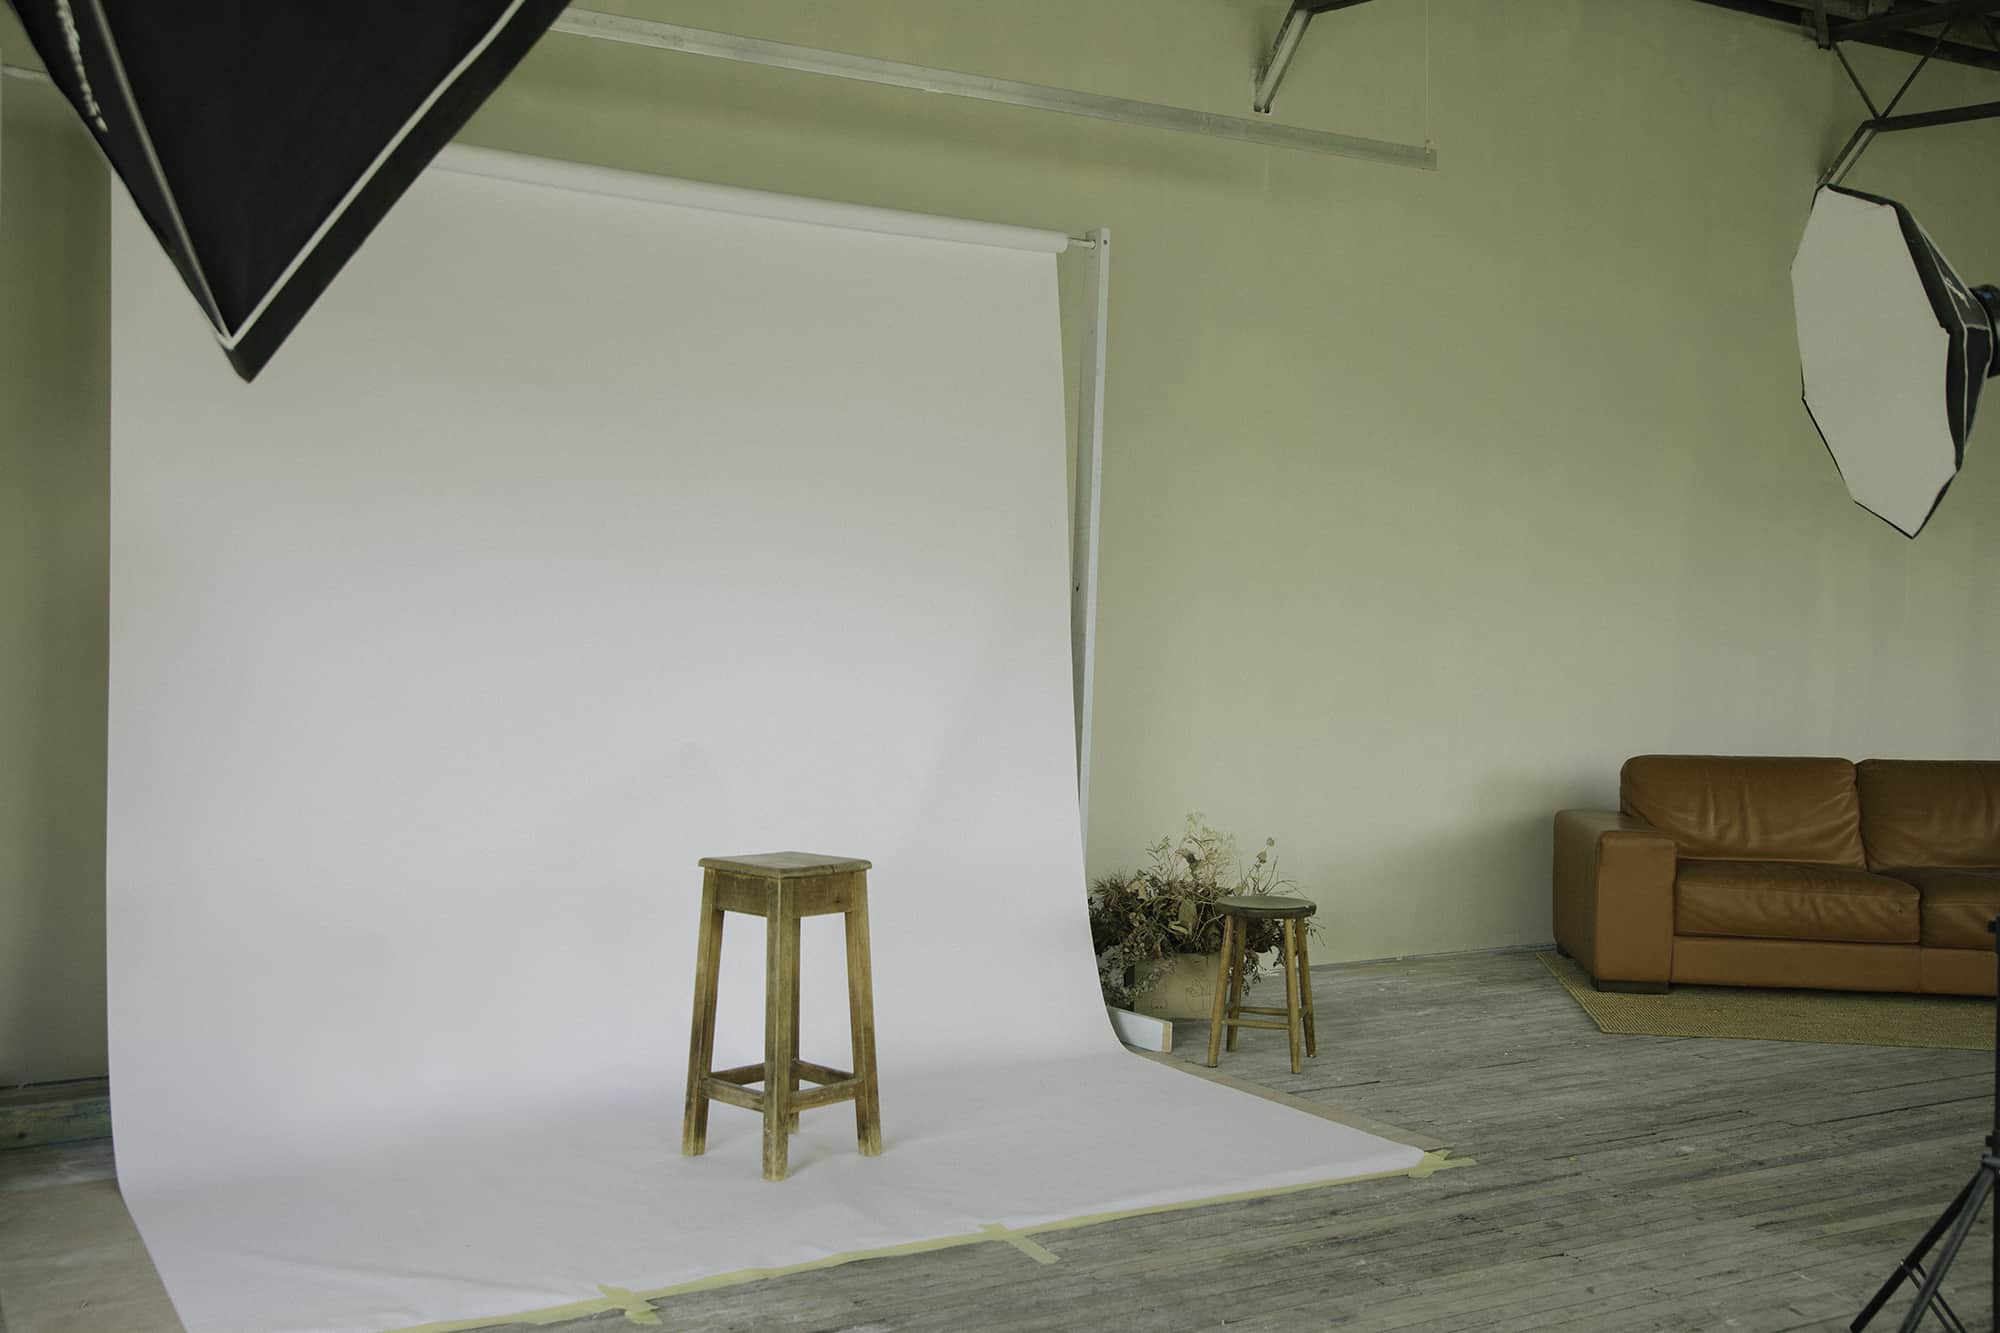 Yatoma Studio Rentable Photography Studio Event Space Photography Equipment Hire Life Drawing Brisbane